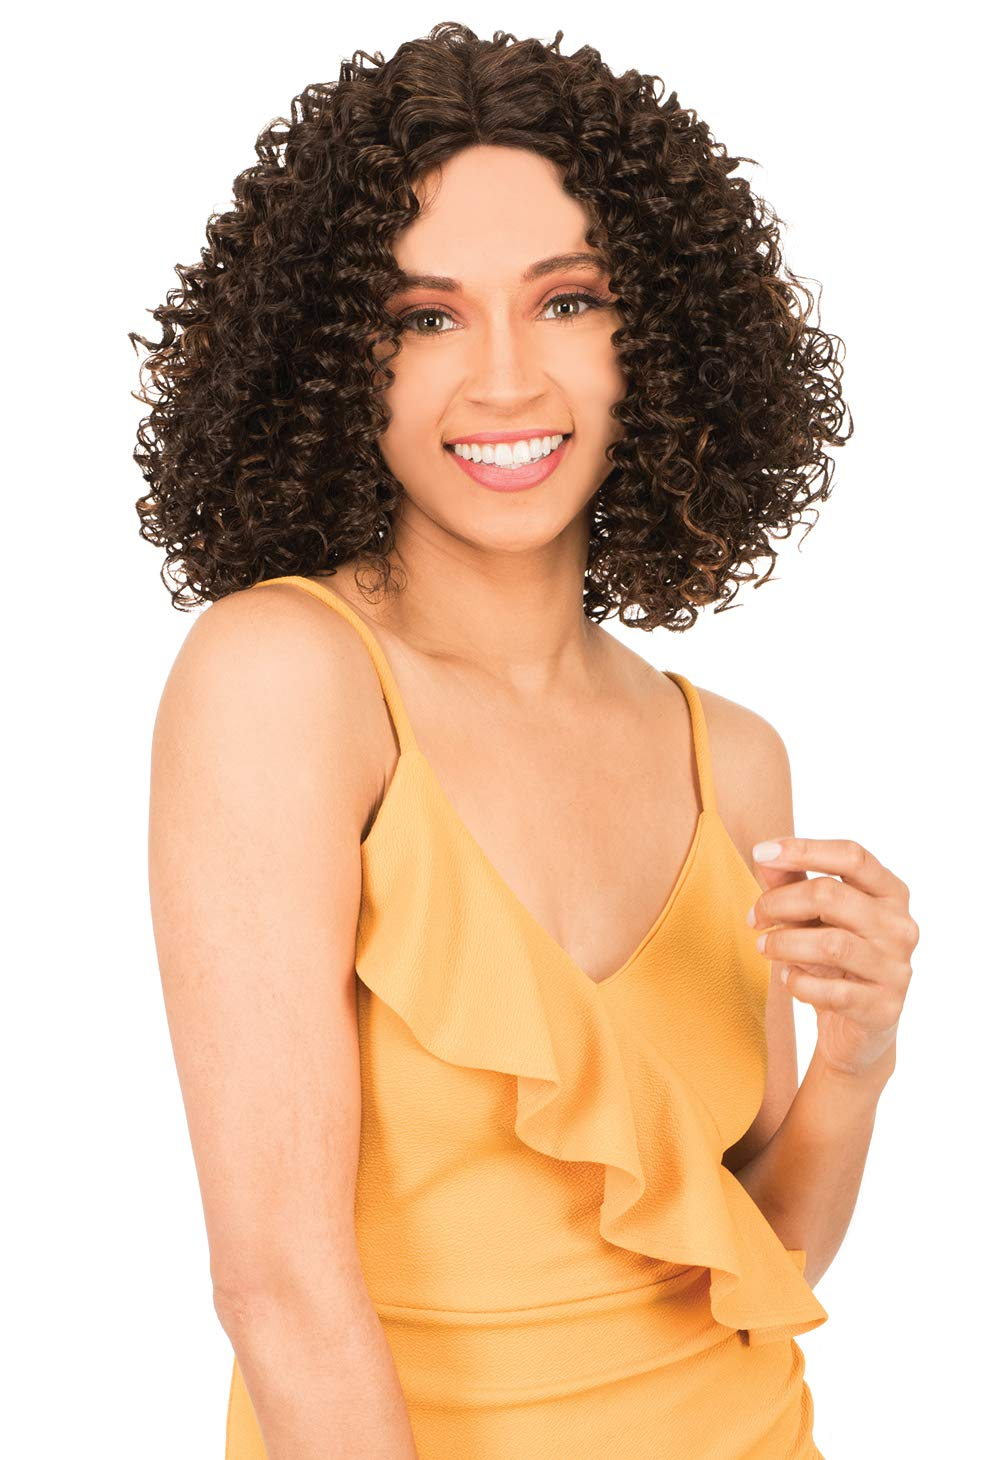 New Born Free High Heat Resistant Wig Front Synthetic Hair Las Vegas Mall Lace [Alternative dealer]